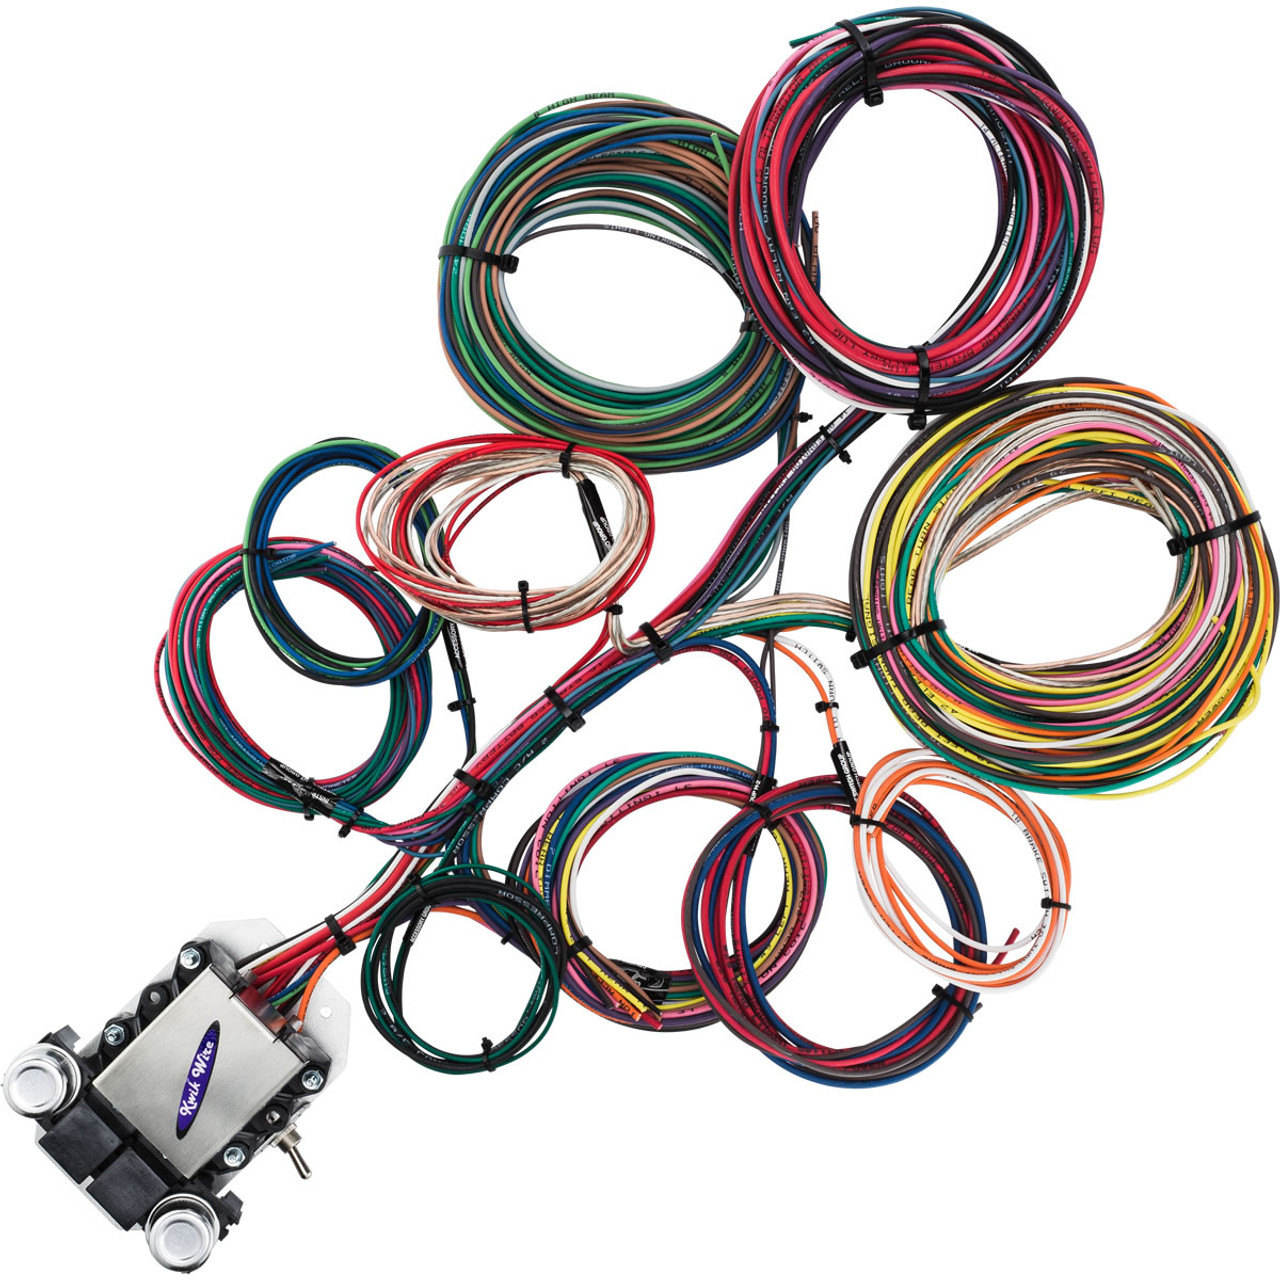 14 circuit wire harness kwikwire com electrify your ride painless wire harness installation instructions 10206 wire harness instruction [ 1200 x 1200 Pixel ]